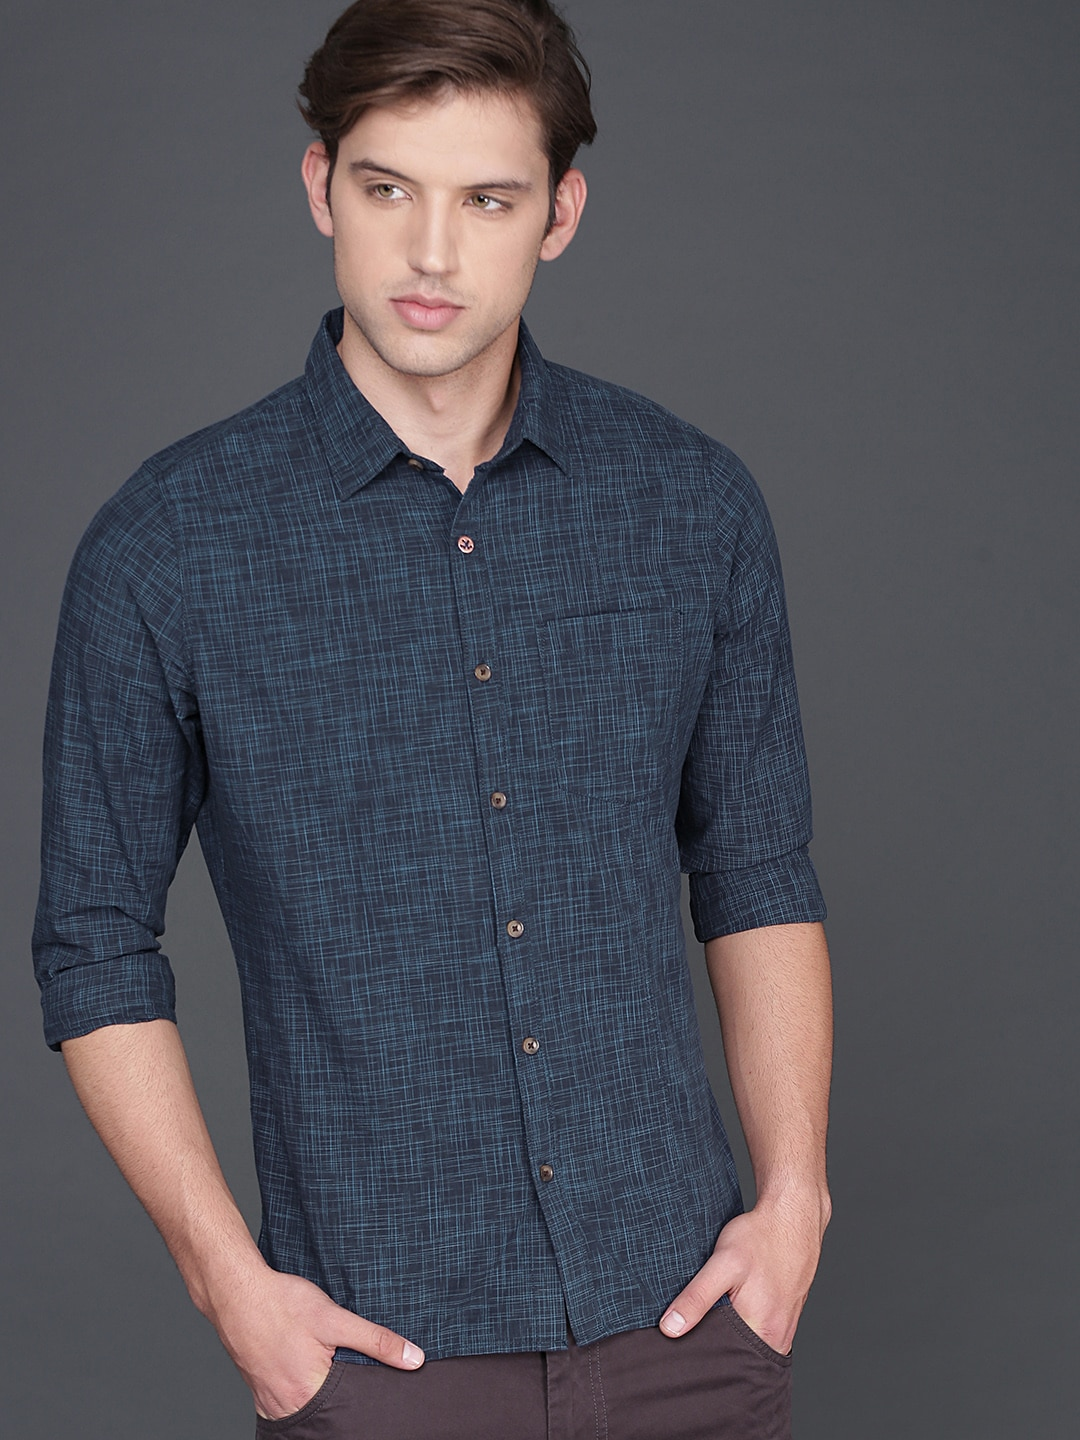 680cefc1b38 Micro Check Shirts For Men - Buy Micro Check Shirts For Men online in India